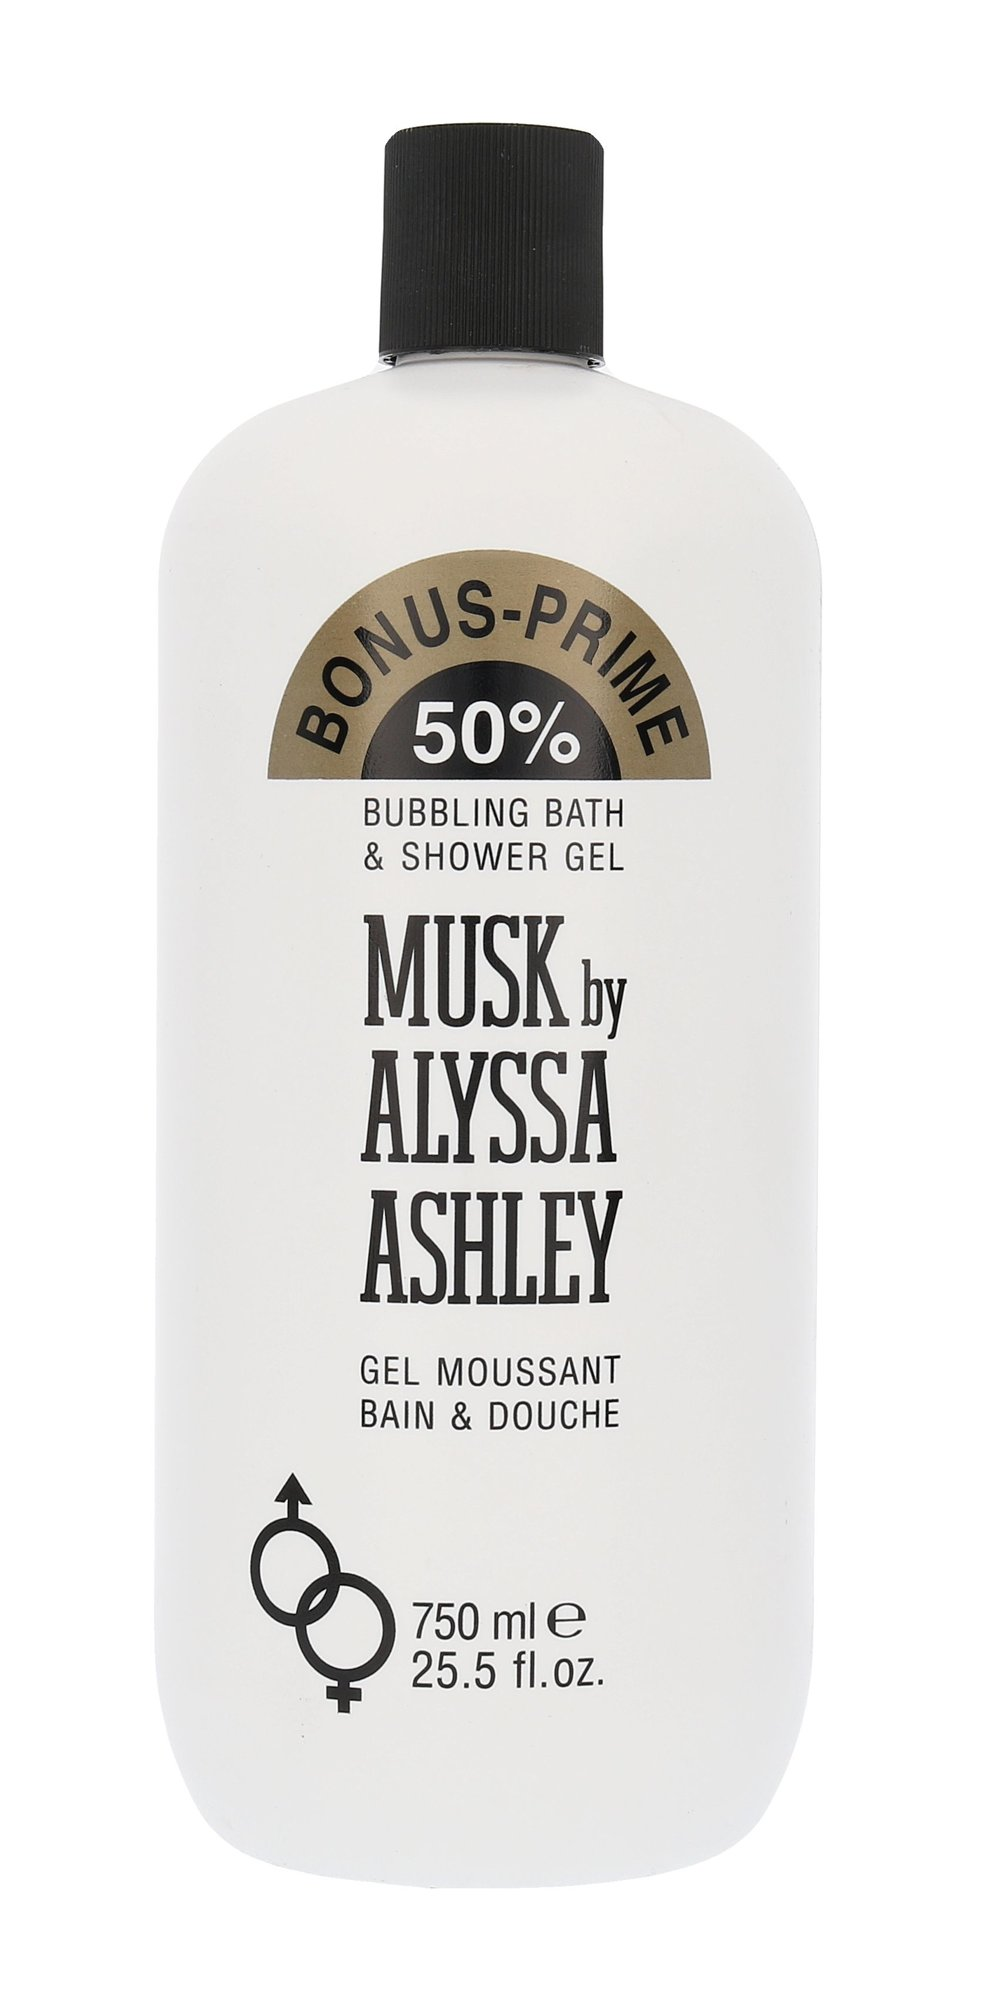 Alyssa Ashley Musk Shower gel 750ml